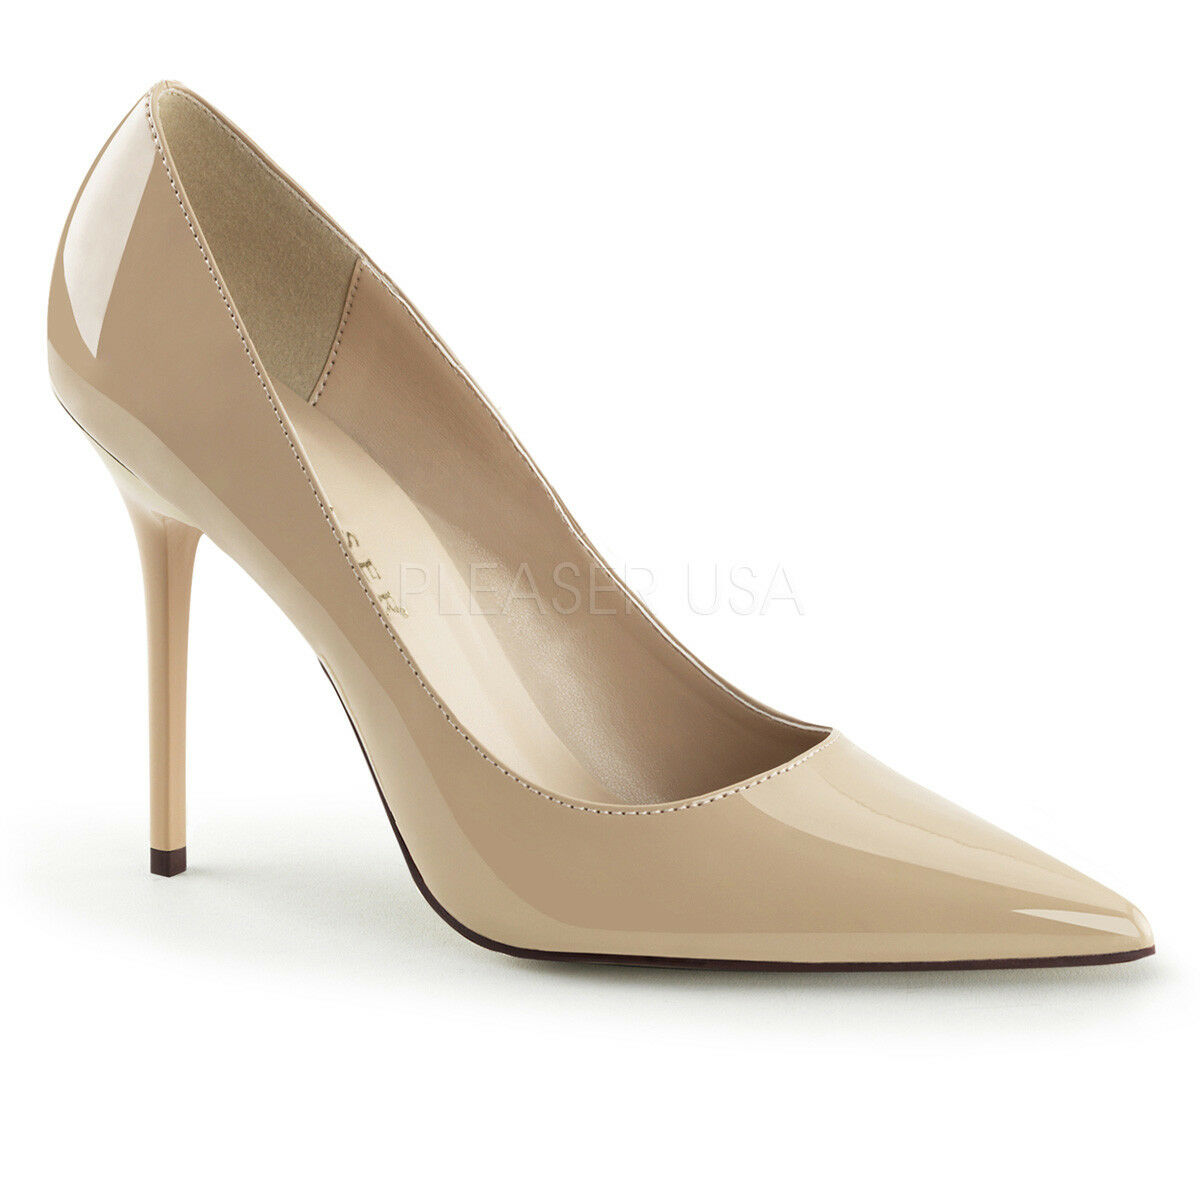 Pleaser CLASSIQUE-20 Womens Cream Patent  Pointed Toe Pump Stilleto High Heels